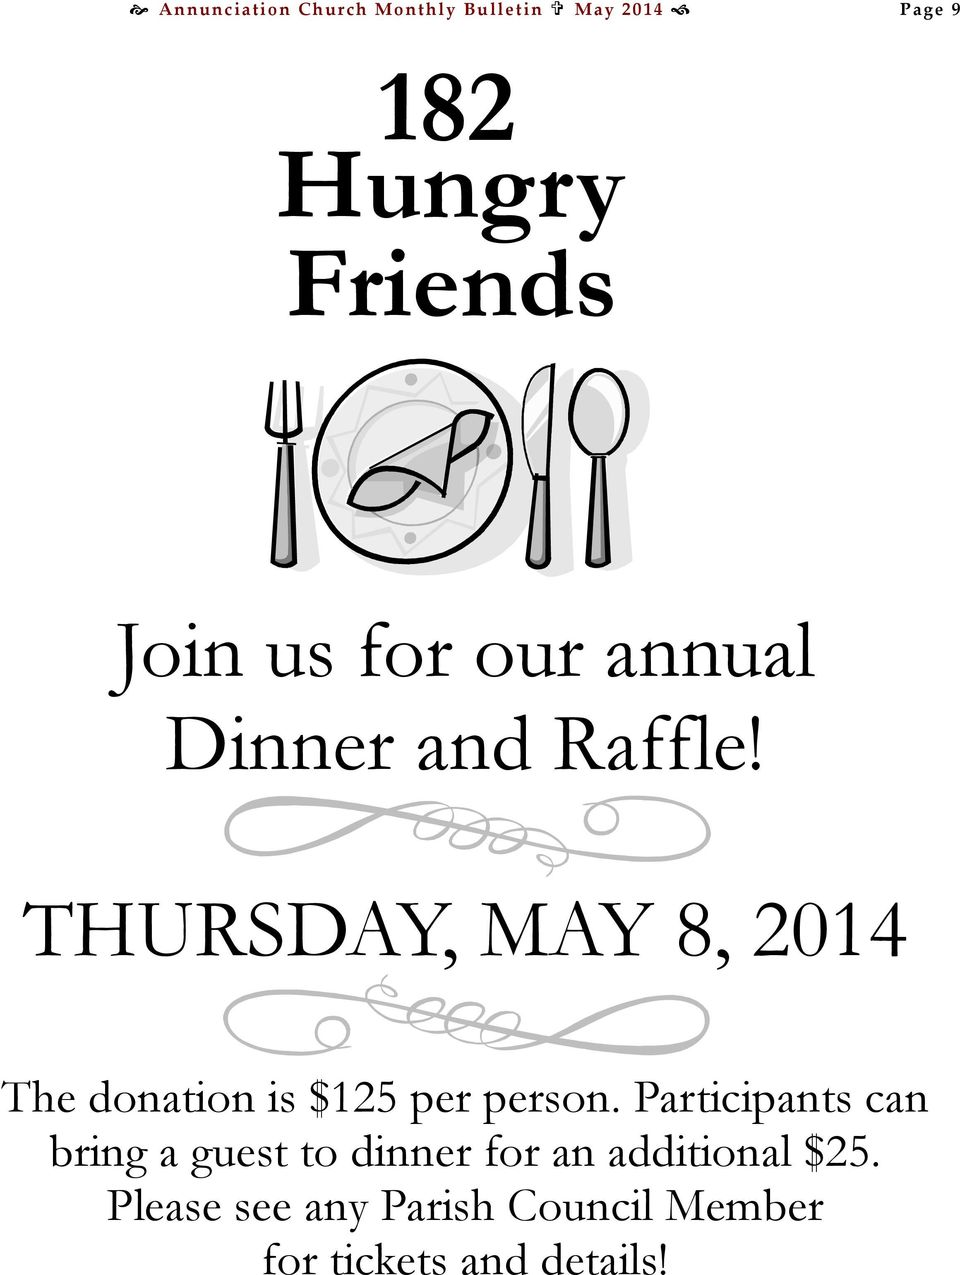 THURSDAY, MAY 8, 2014 The donation is $125 per person.